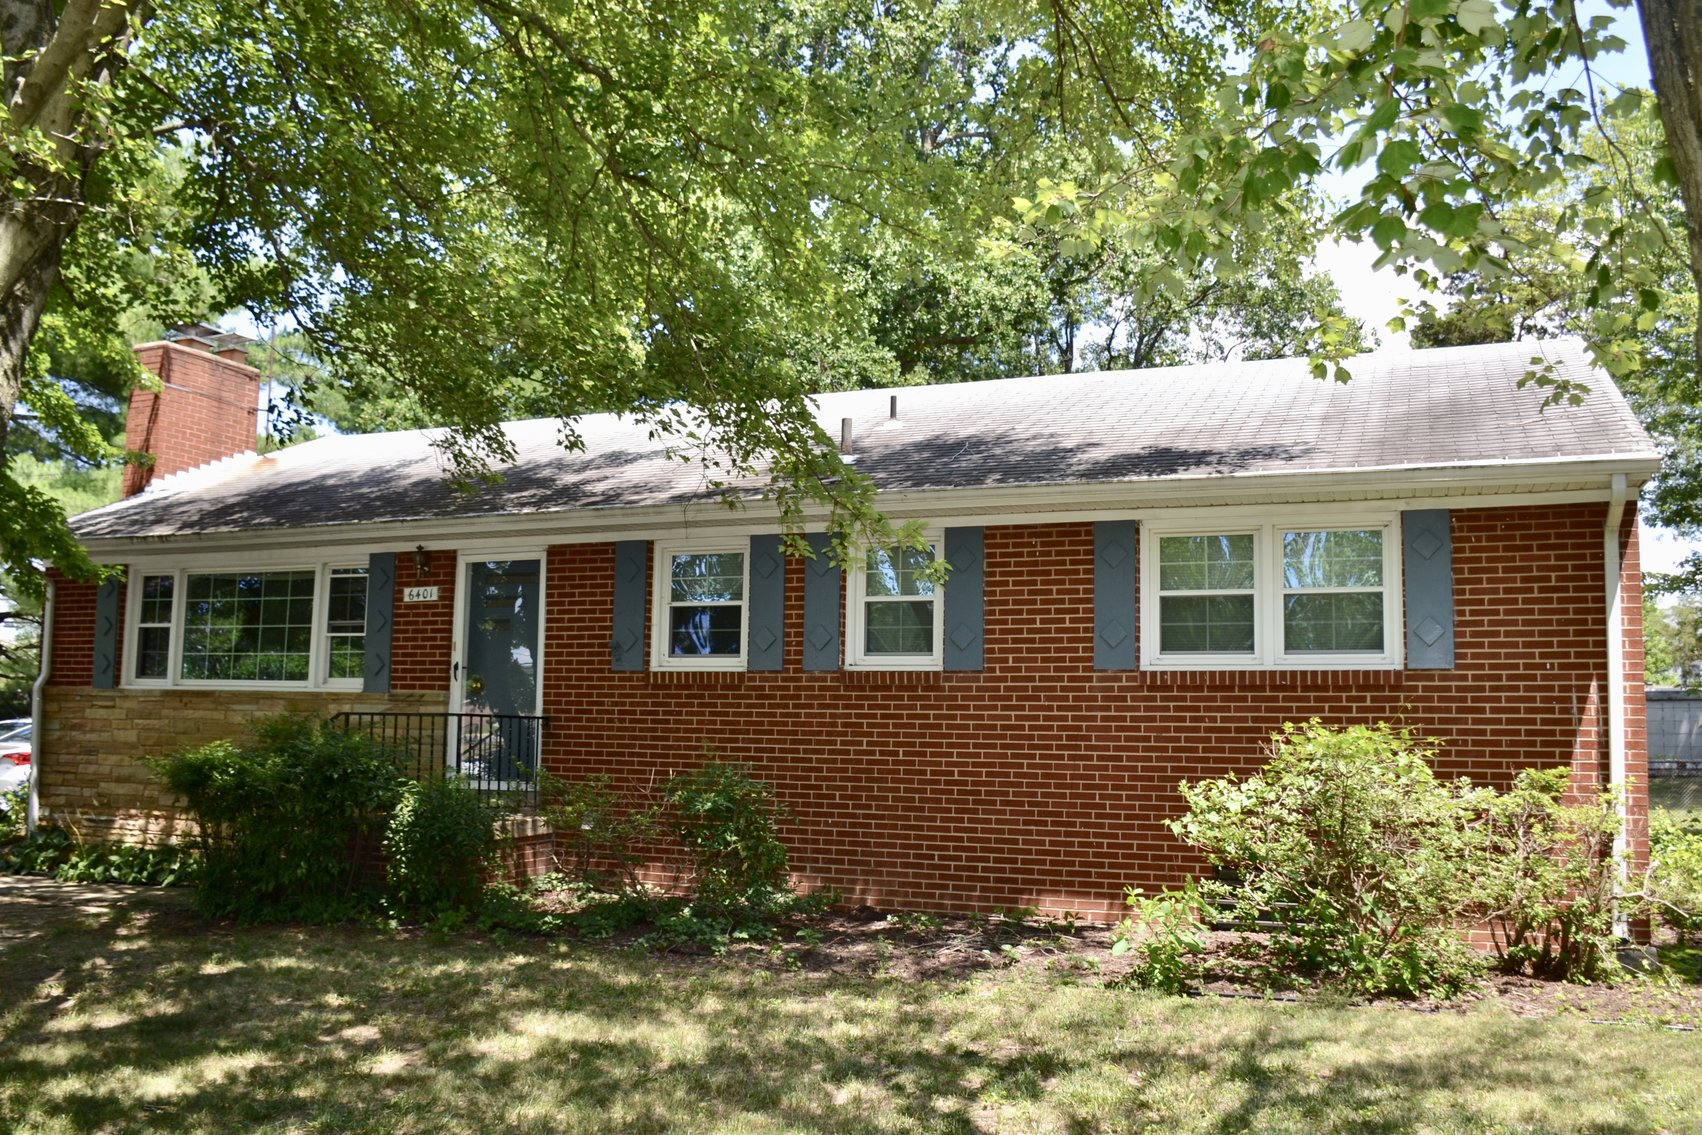 3 BR/3 BA Home w/Basement on Corner Lot in Fairfax County--1.8 Miles to Franconia/Springfield Metro Station